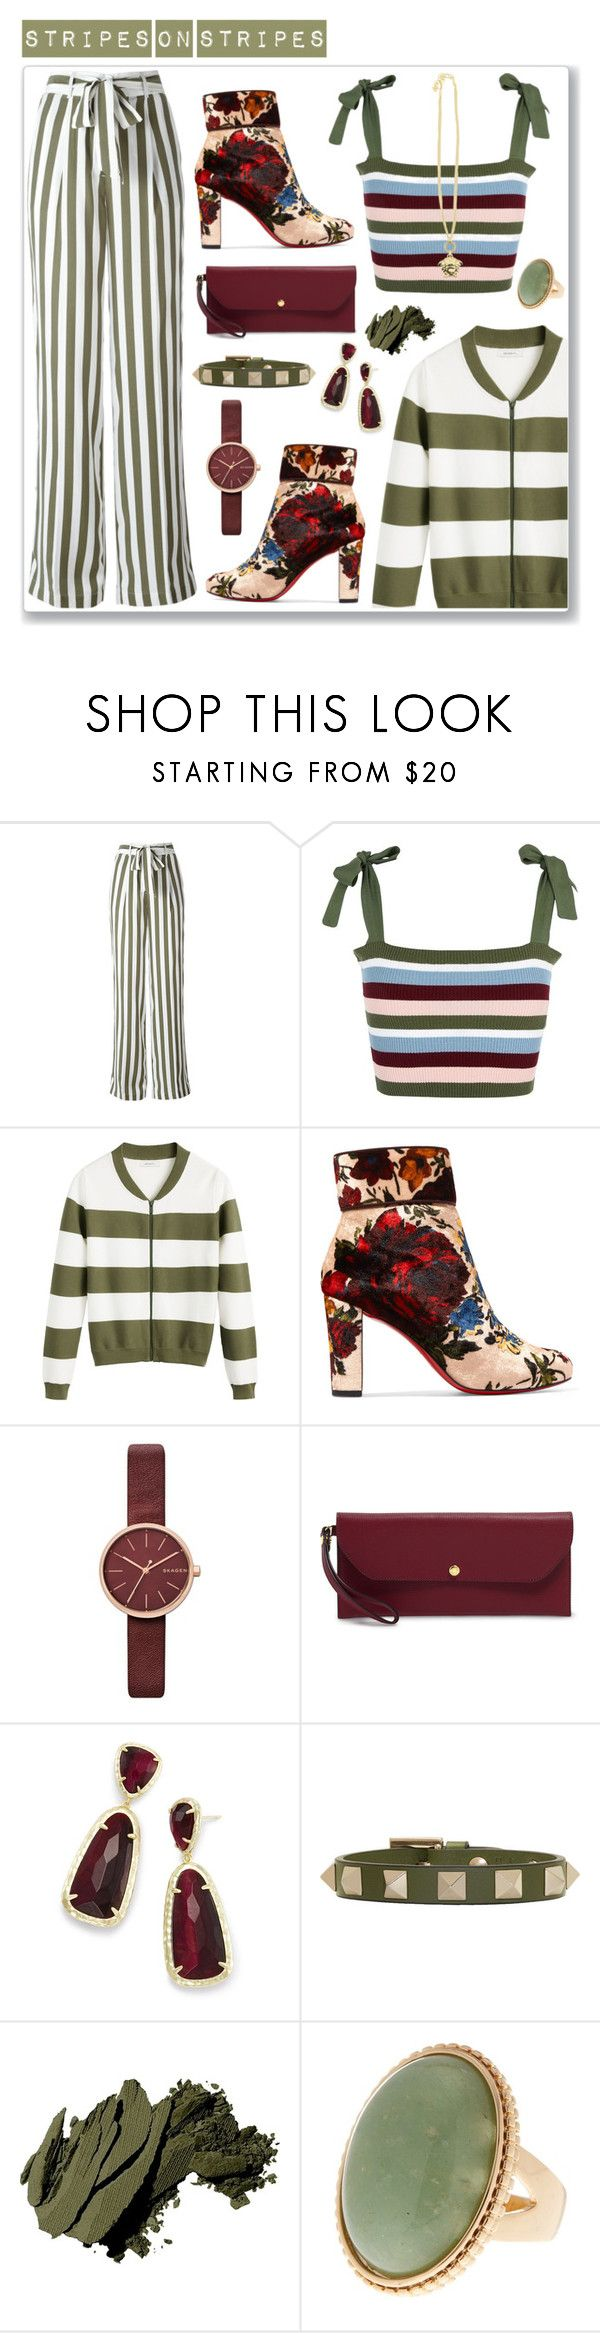 """""""Stripes"""" by hellodollface ❤ liked on Polyvore featuring Equipment, I'm Isola Marras, Sandwich, Christian Louboutin, Skagen, Henri Bendel, Kendra Scott, Valentino, Bobbi Brown Cosmetics and Versace"""